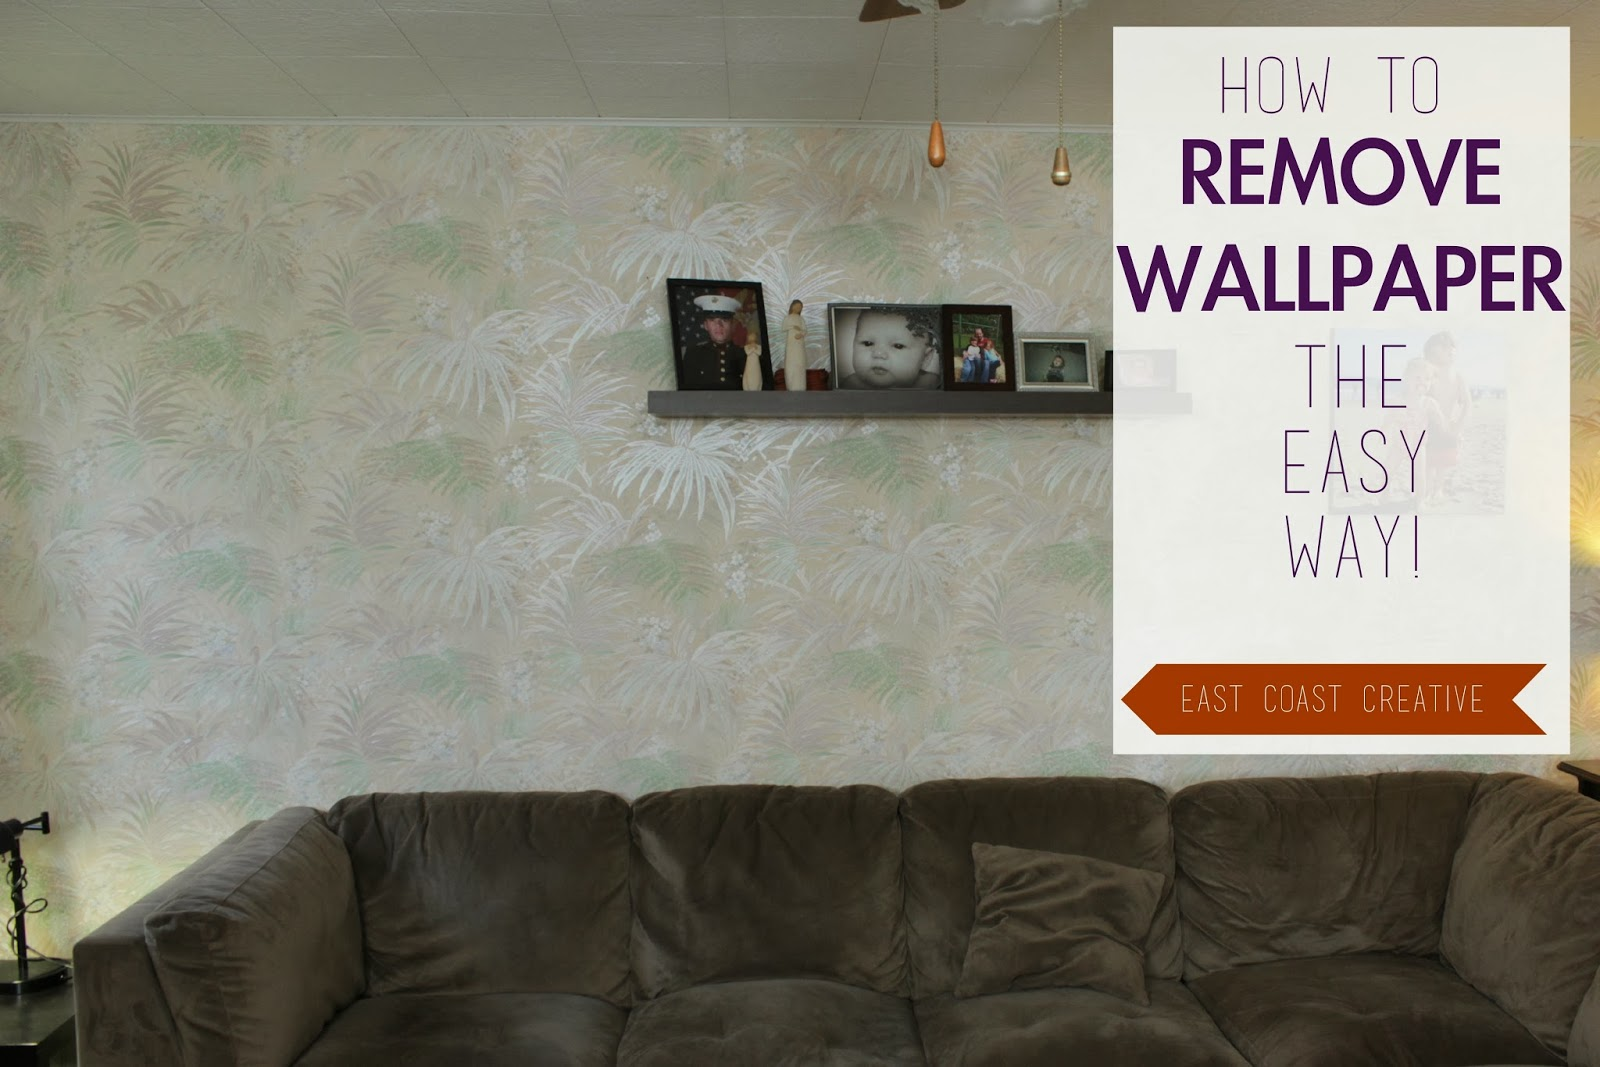 How to Remove Wallpaper the Easy Way   East Coast Creative Blog 1600x1067